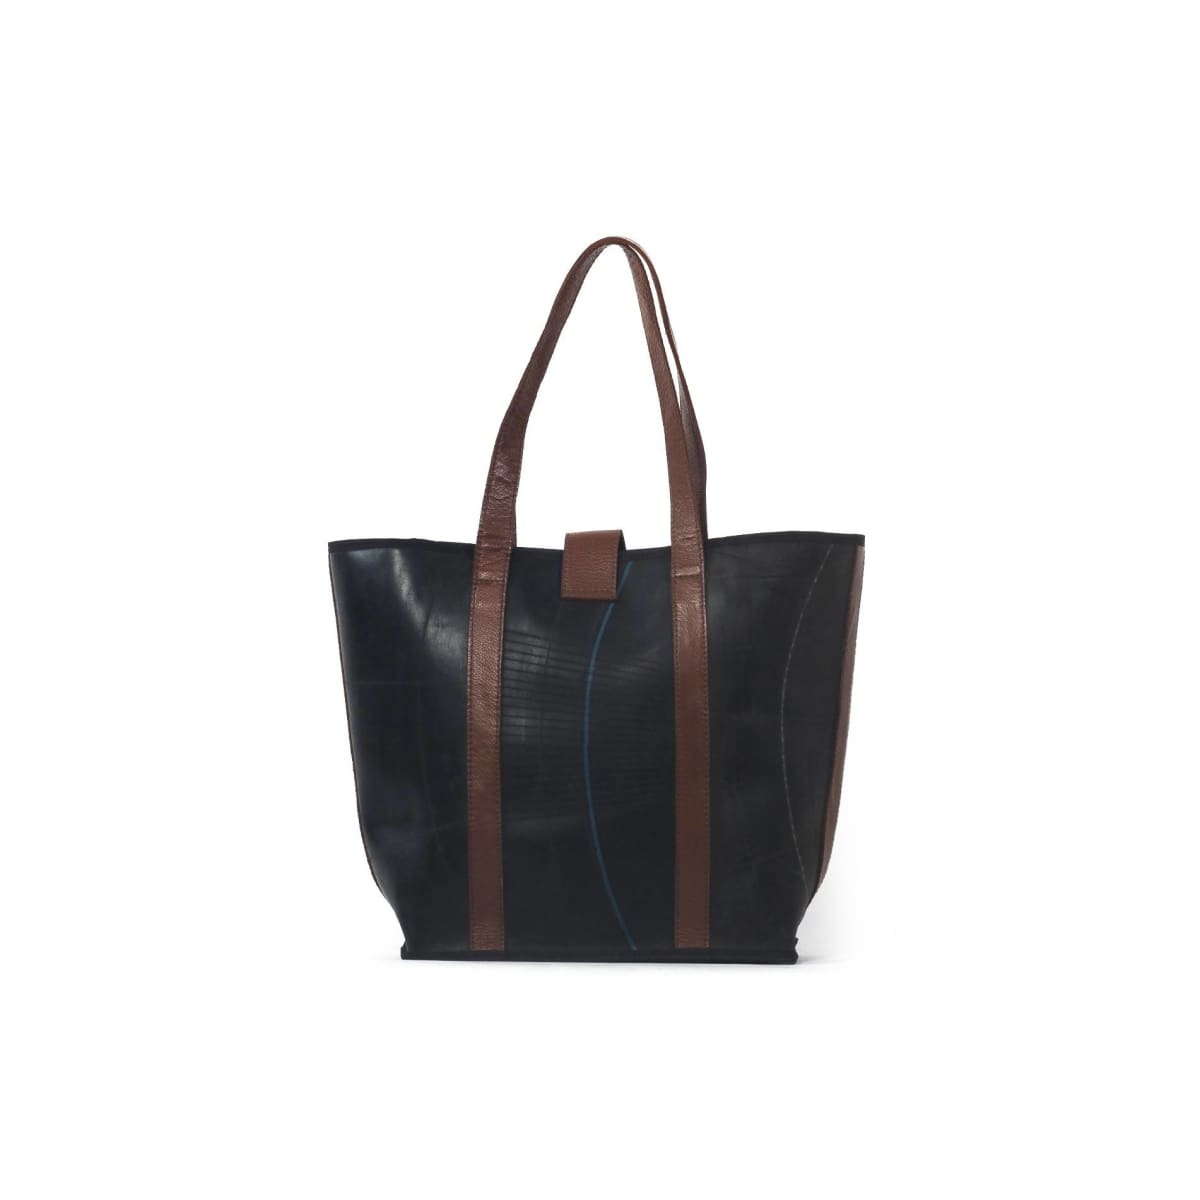 Tote Bags Recycled Leather Bag from Tyre Tubes